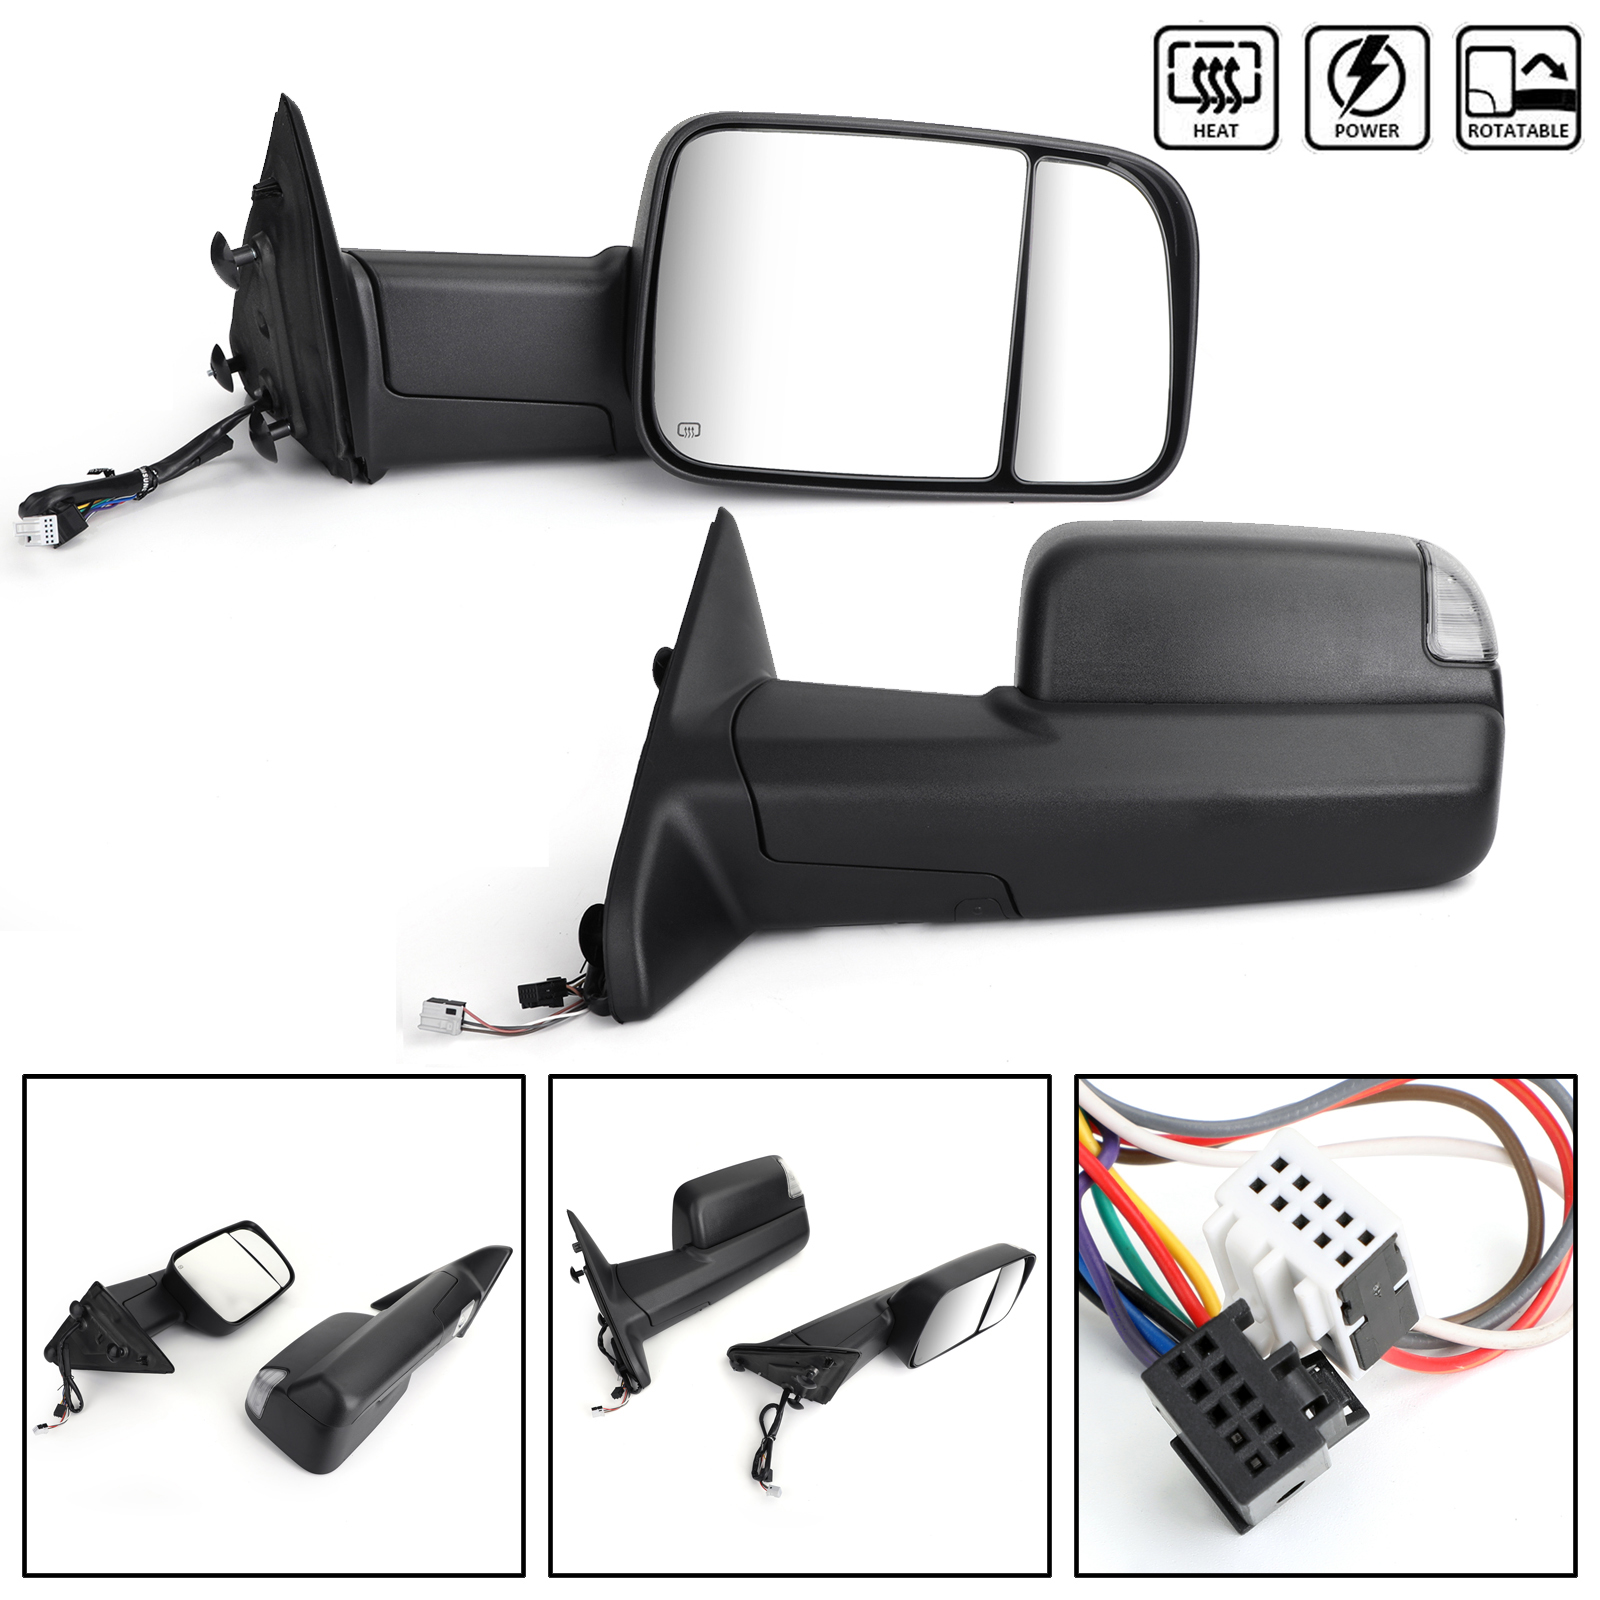 FOR 09-12 DODGE RAM 1500-3500 TRUCK POWER+HEATED REAR VIEW TOWING MIRROR PAIR